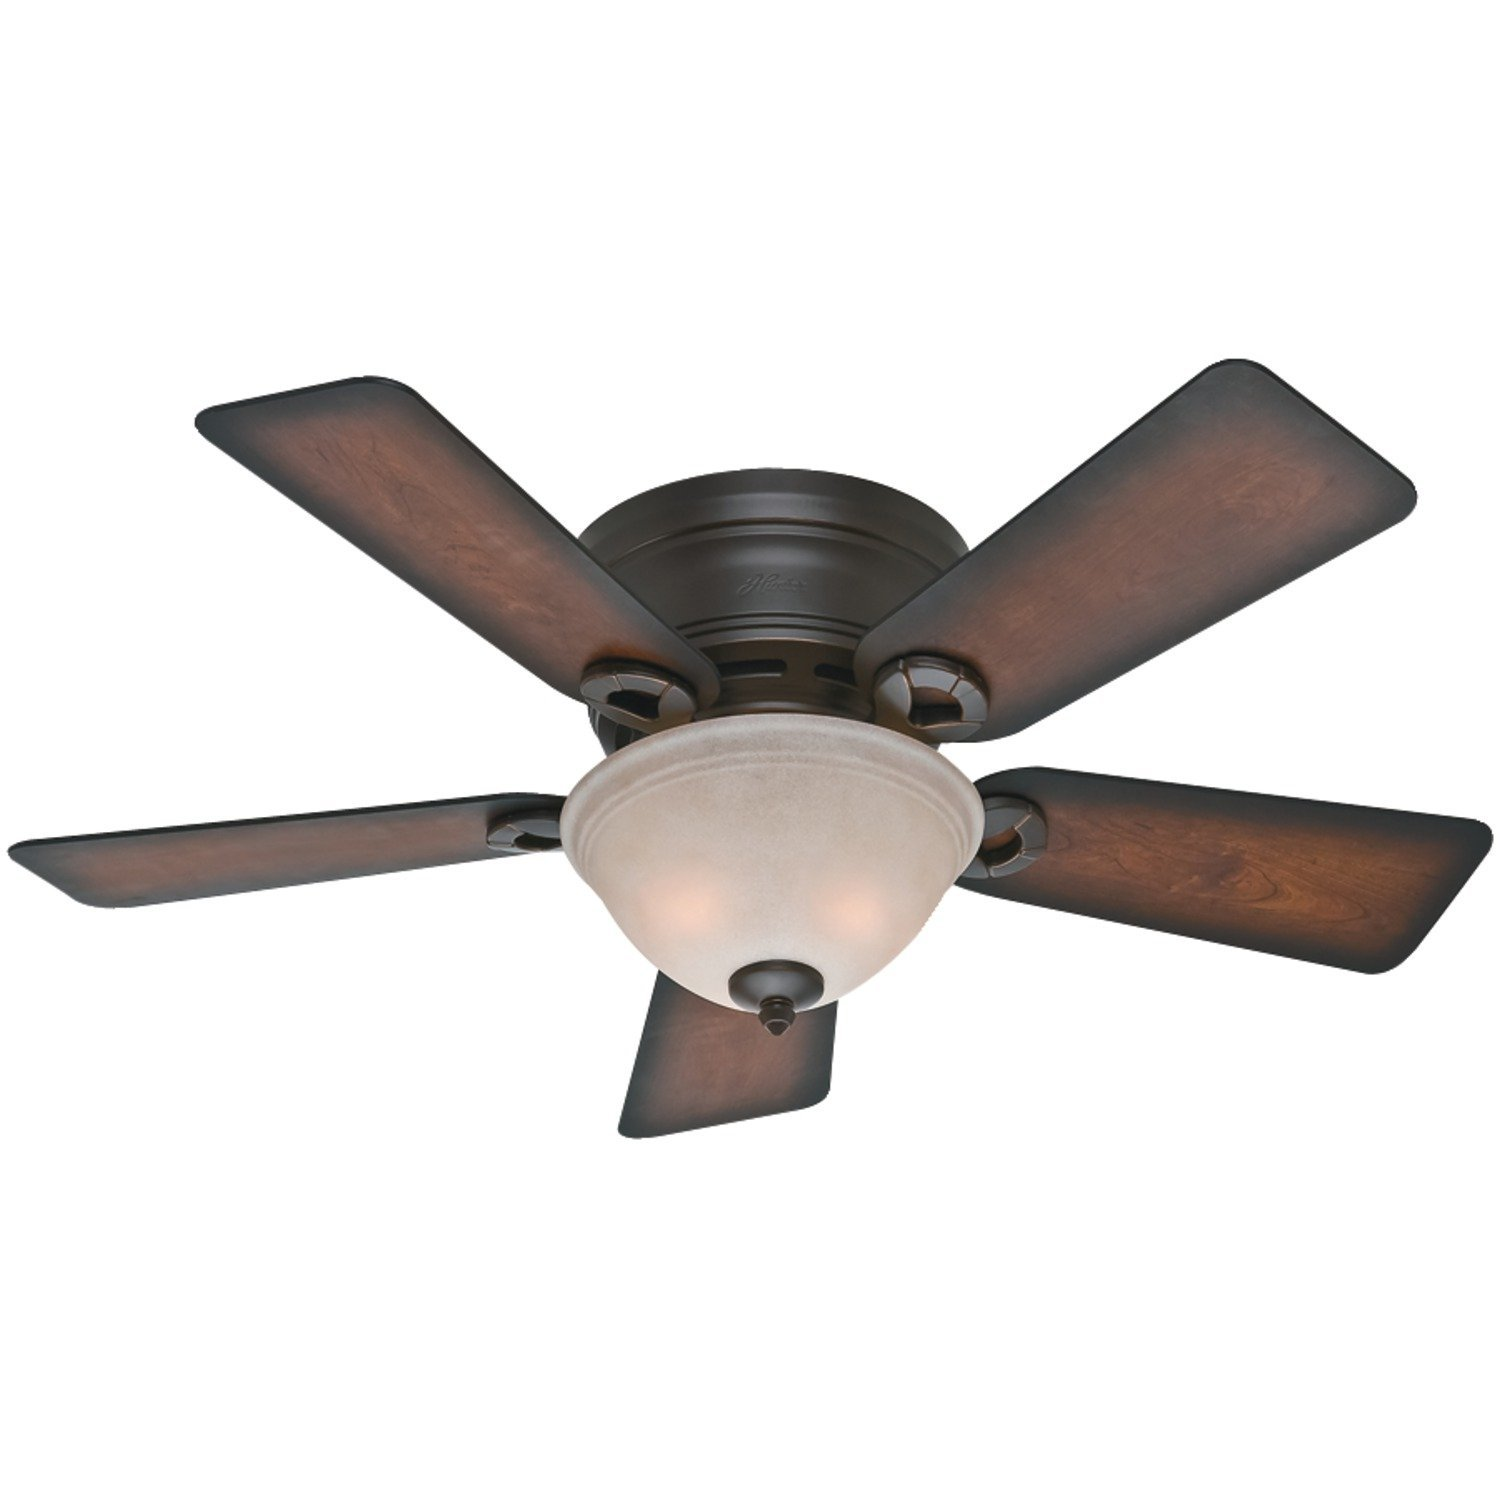 Hunter Fan Company 51023 Conroy 42-Inch Onyx Bengal Ceiling Fan with Five Burnished Mahogany Blades and a Light Kit